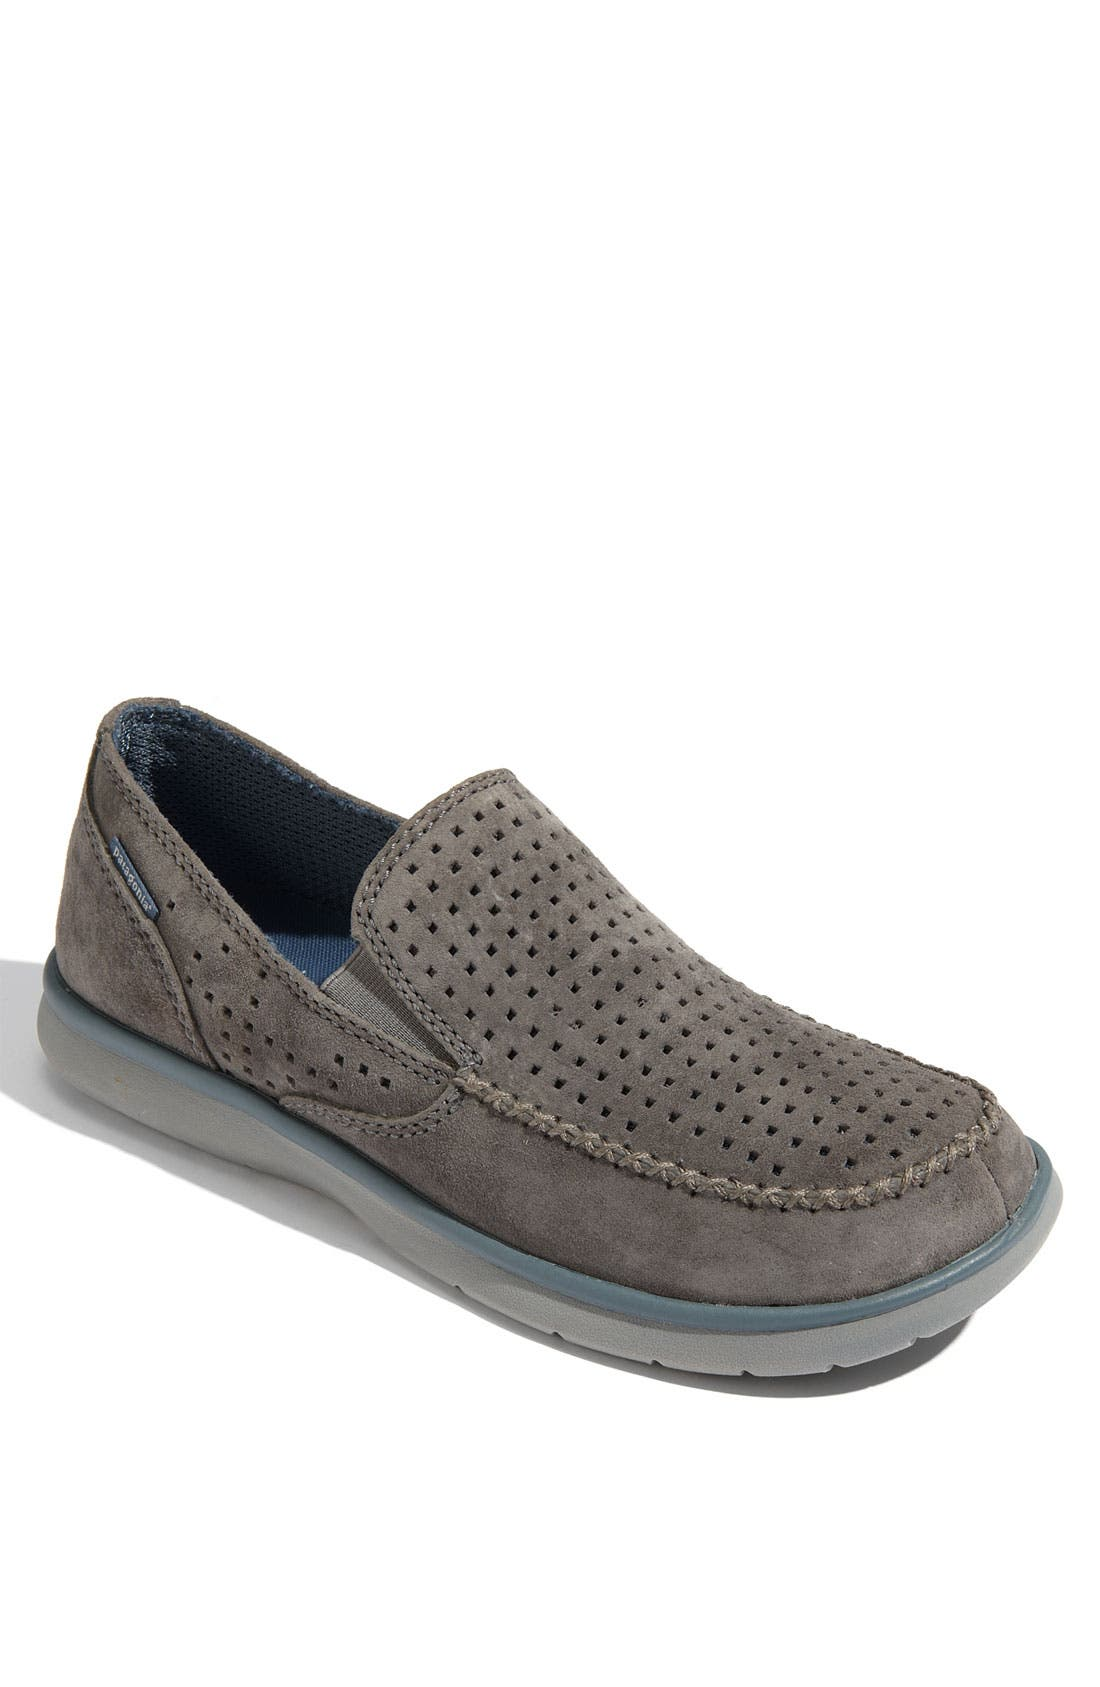 PATAGONIA,                             'Maui Air' Slip-On,                             Main thumbnail 1, color,                             020